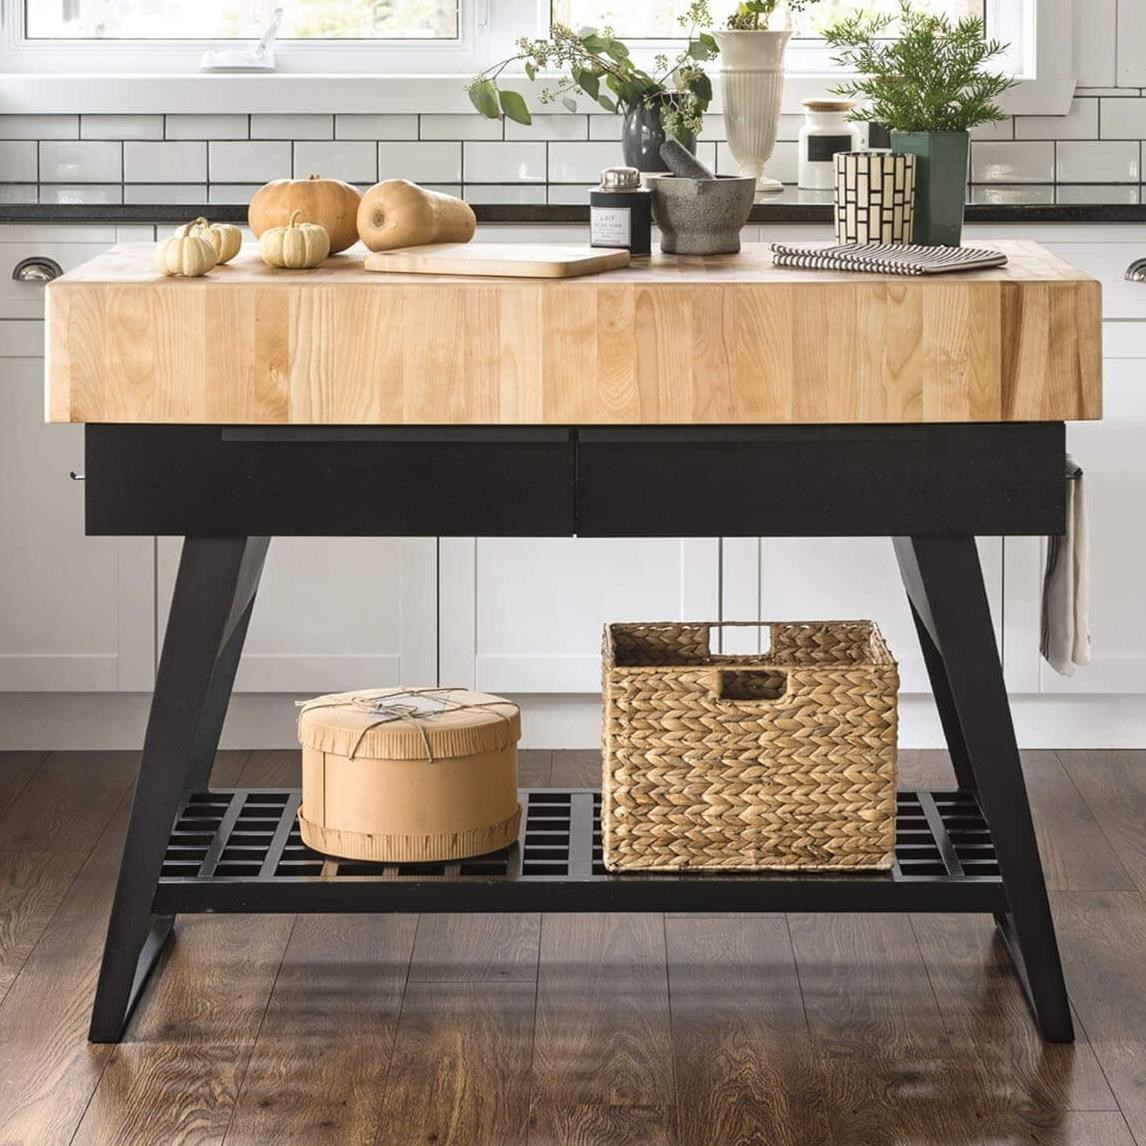 East Side Customizable Kitchen Island by Canadel at Steger's Furniture